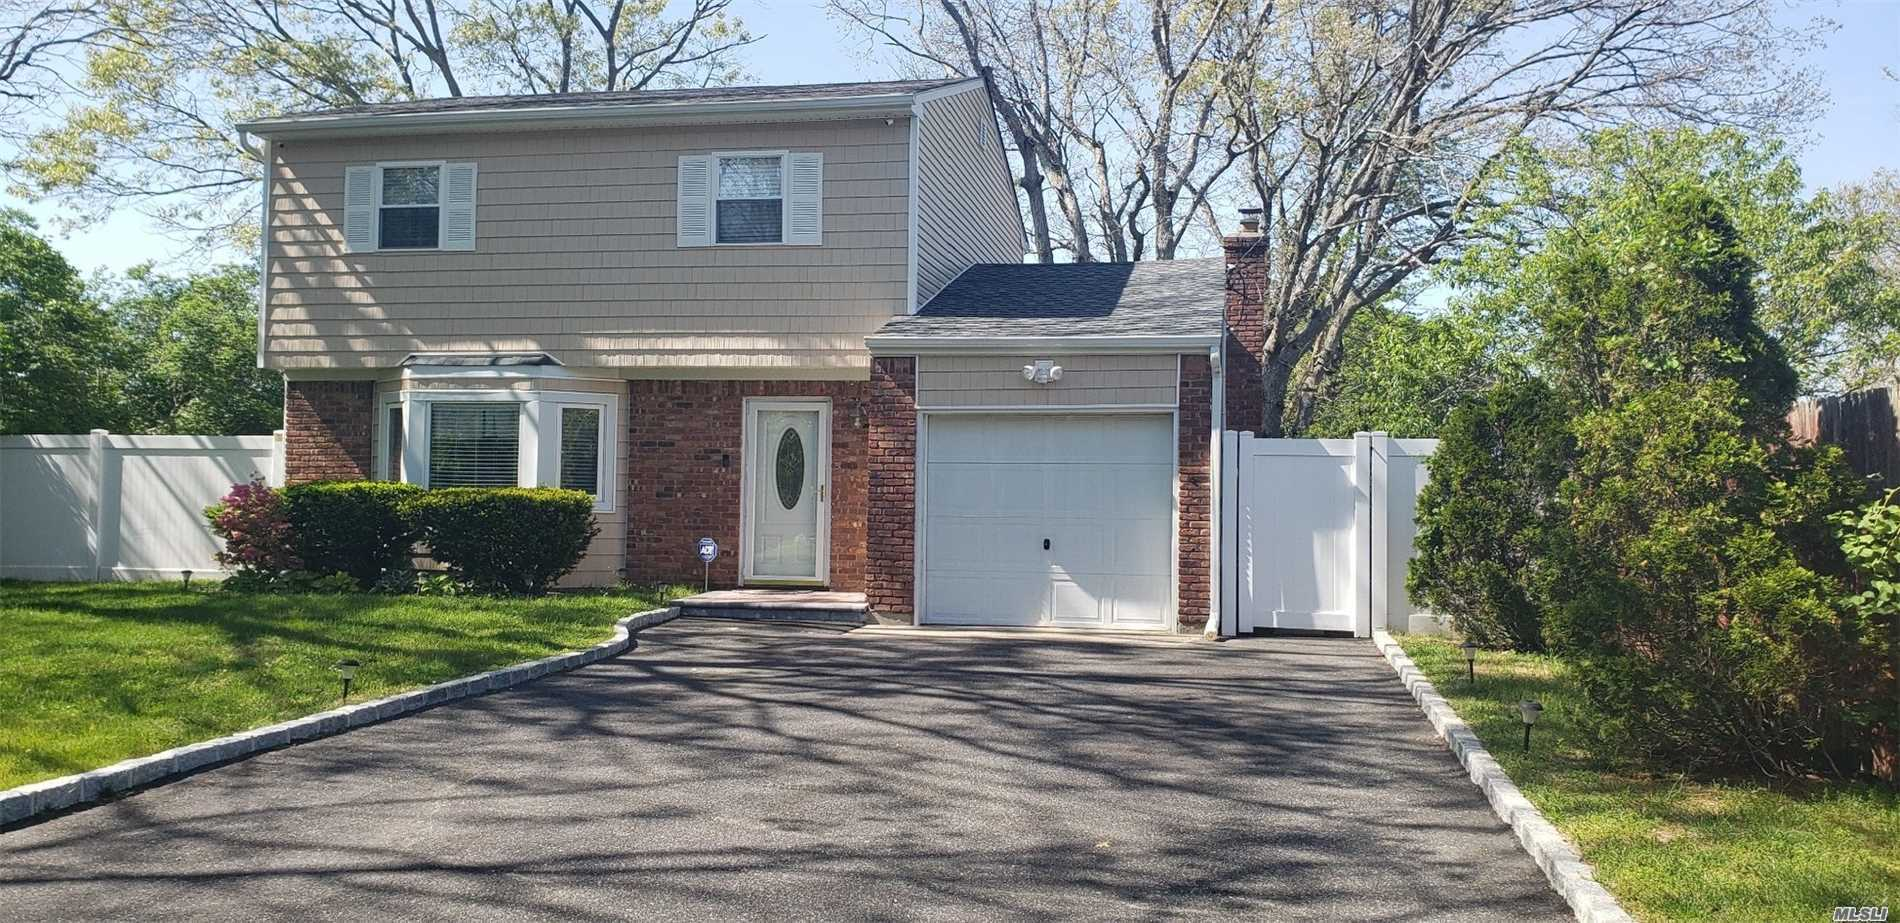 Beautiful 5 Years Young Colonial on private dead end street. Kitchen with center Island, Granite counter tops, Stainless Steel Appliances, New roof, windows, siding, boiler, 200 Amp electrical Service, 4 car driveway, All large bedrooms, Move right in!